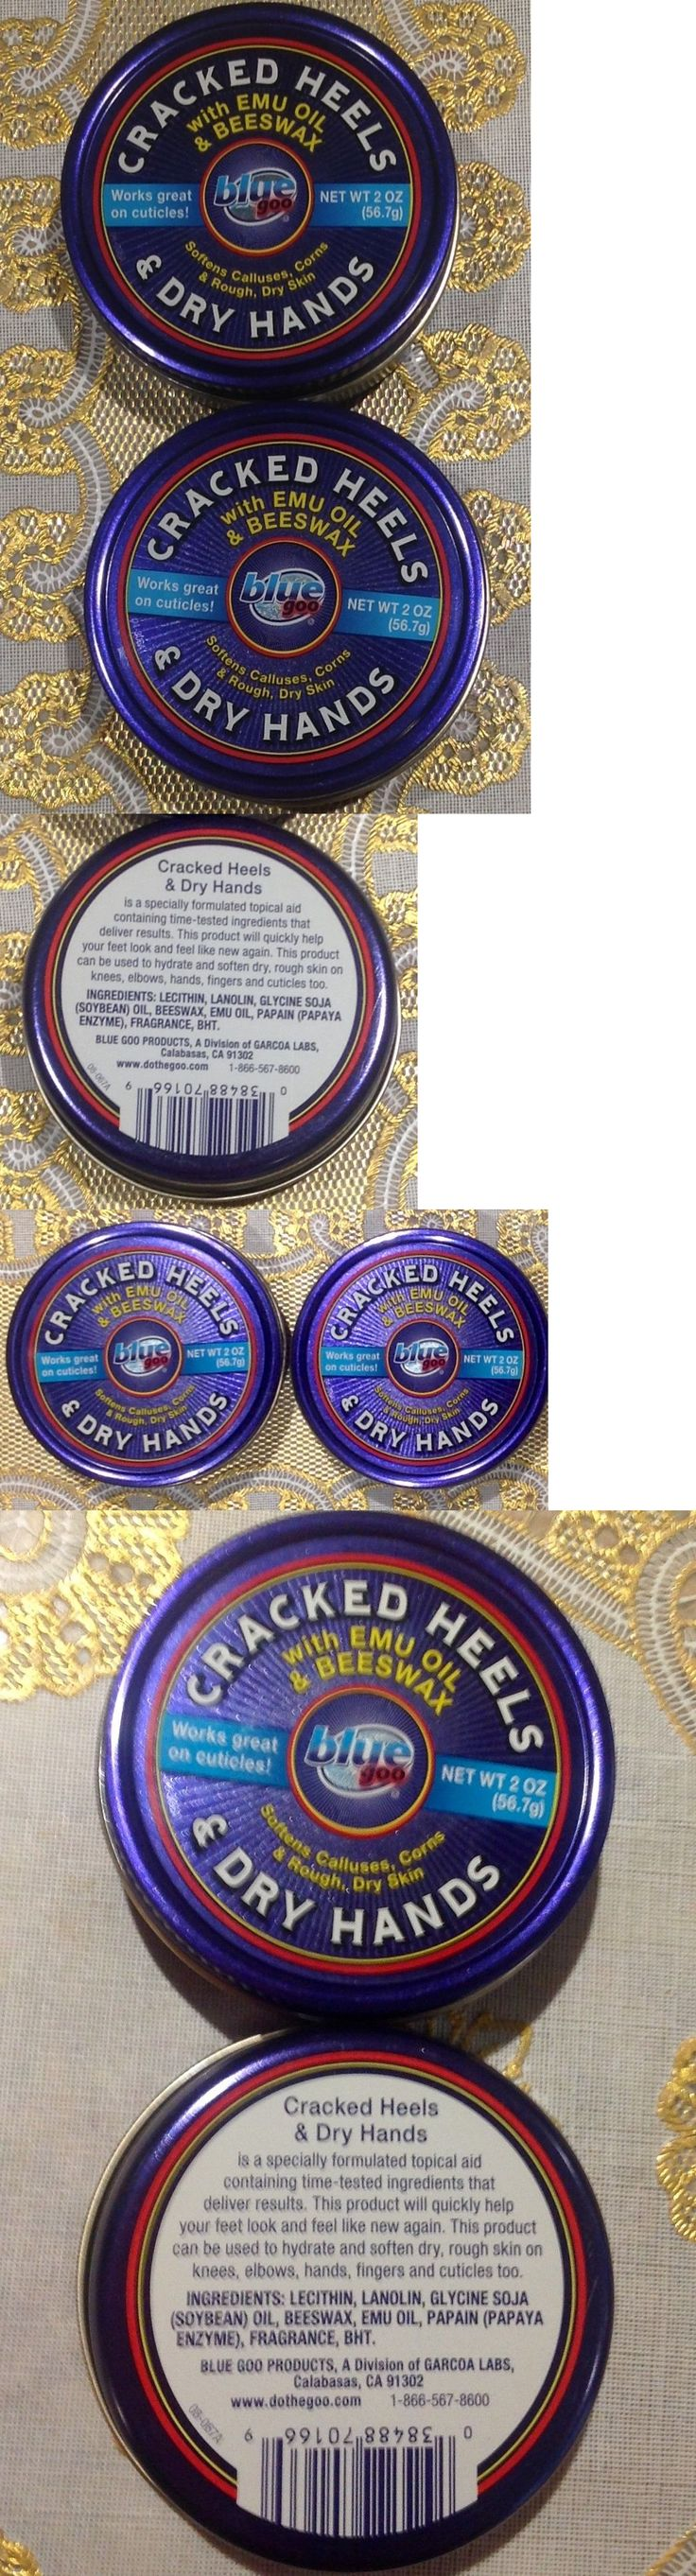 Foot Creams and Treatments: (2) Blue Goo 2 Oz Tins Cracked Heels And Dry Hand Skin Softener Emu Oil And Bees Wax -> BUY IT NOW ONLY: $147.5 on eBay!